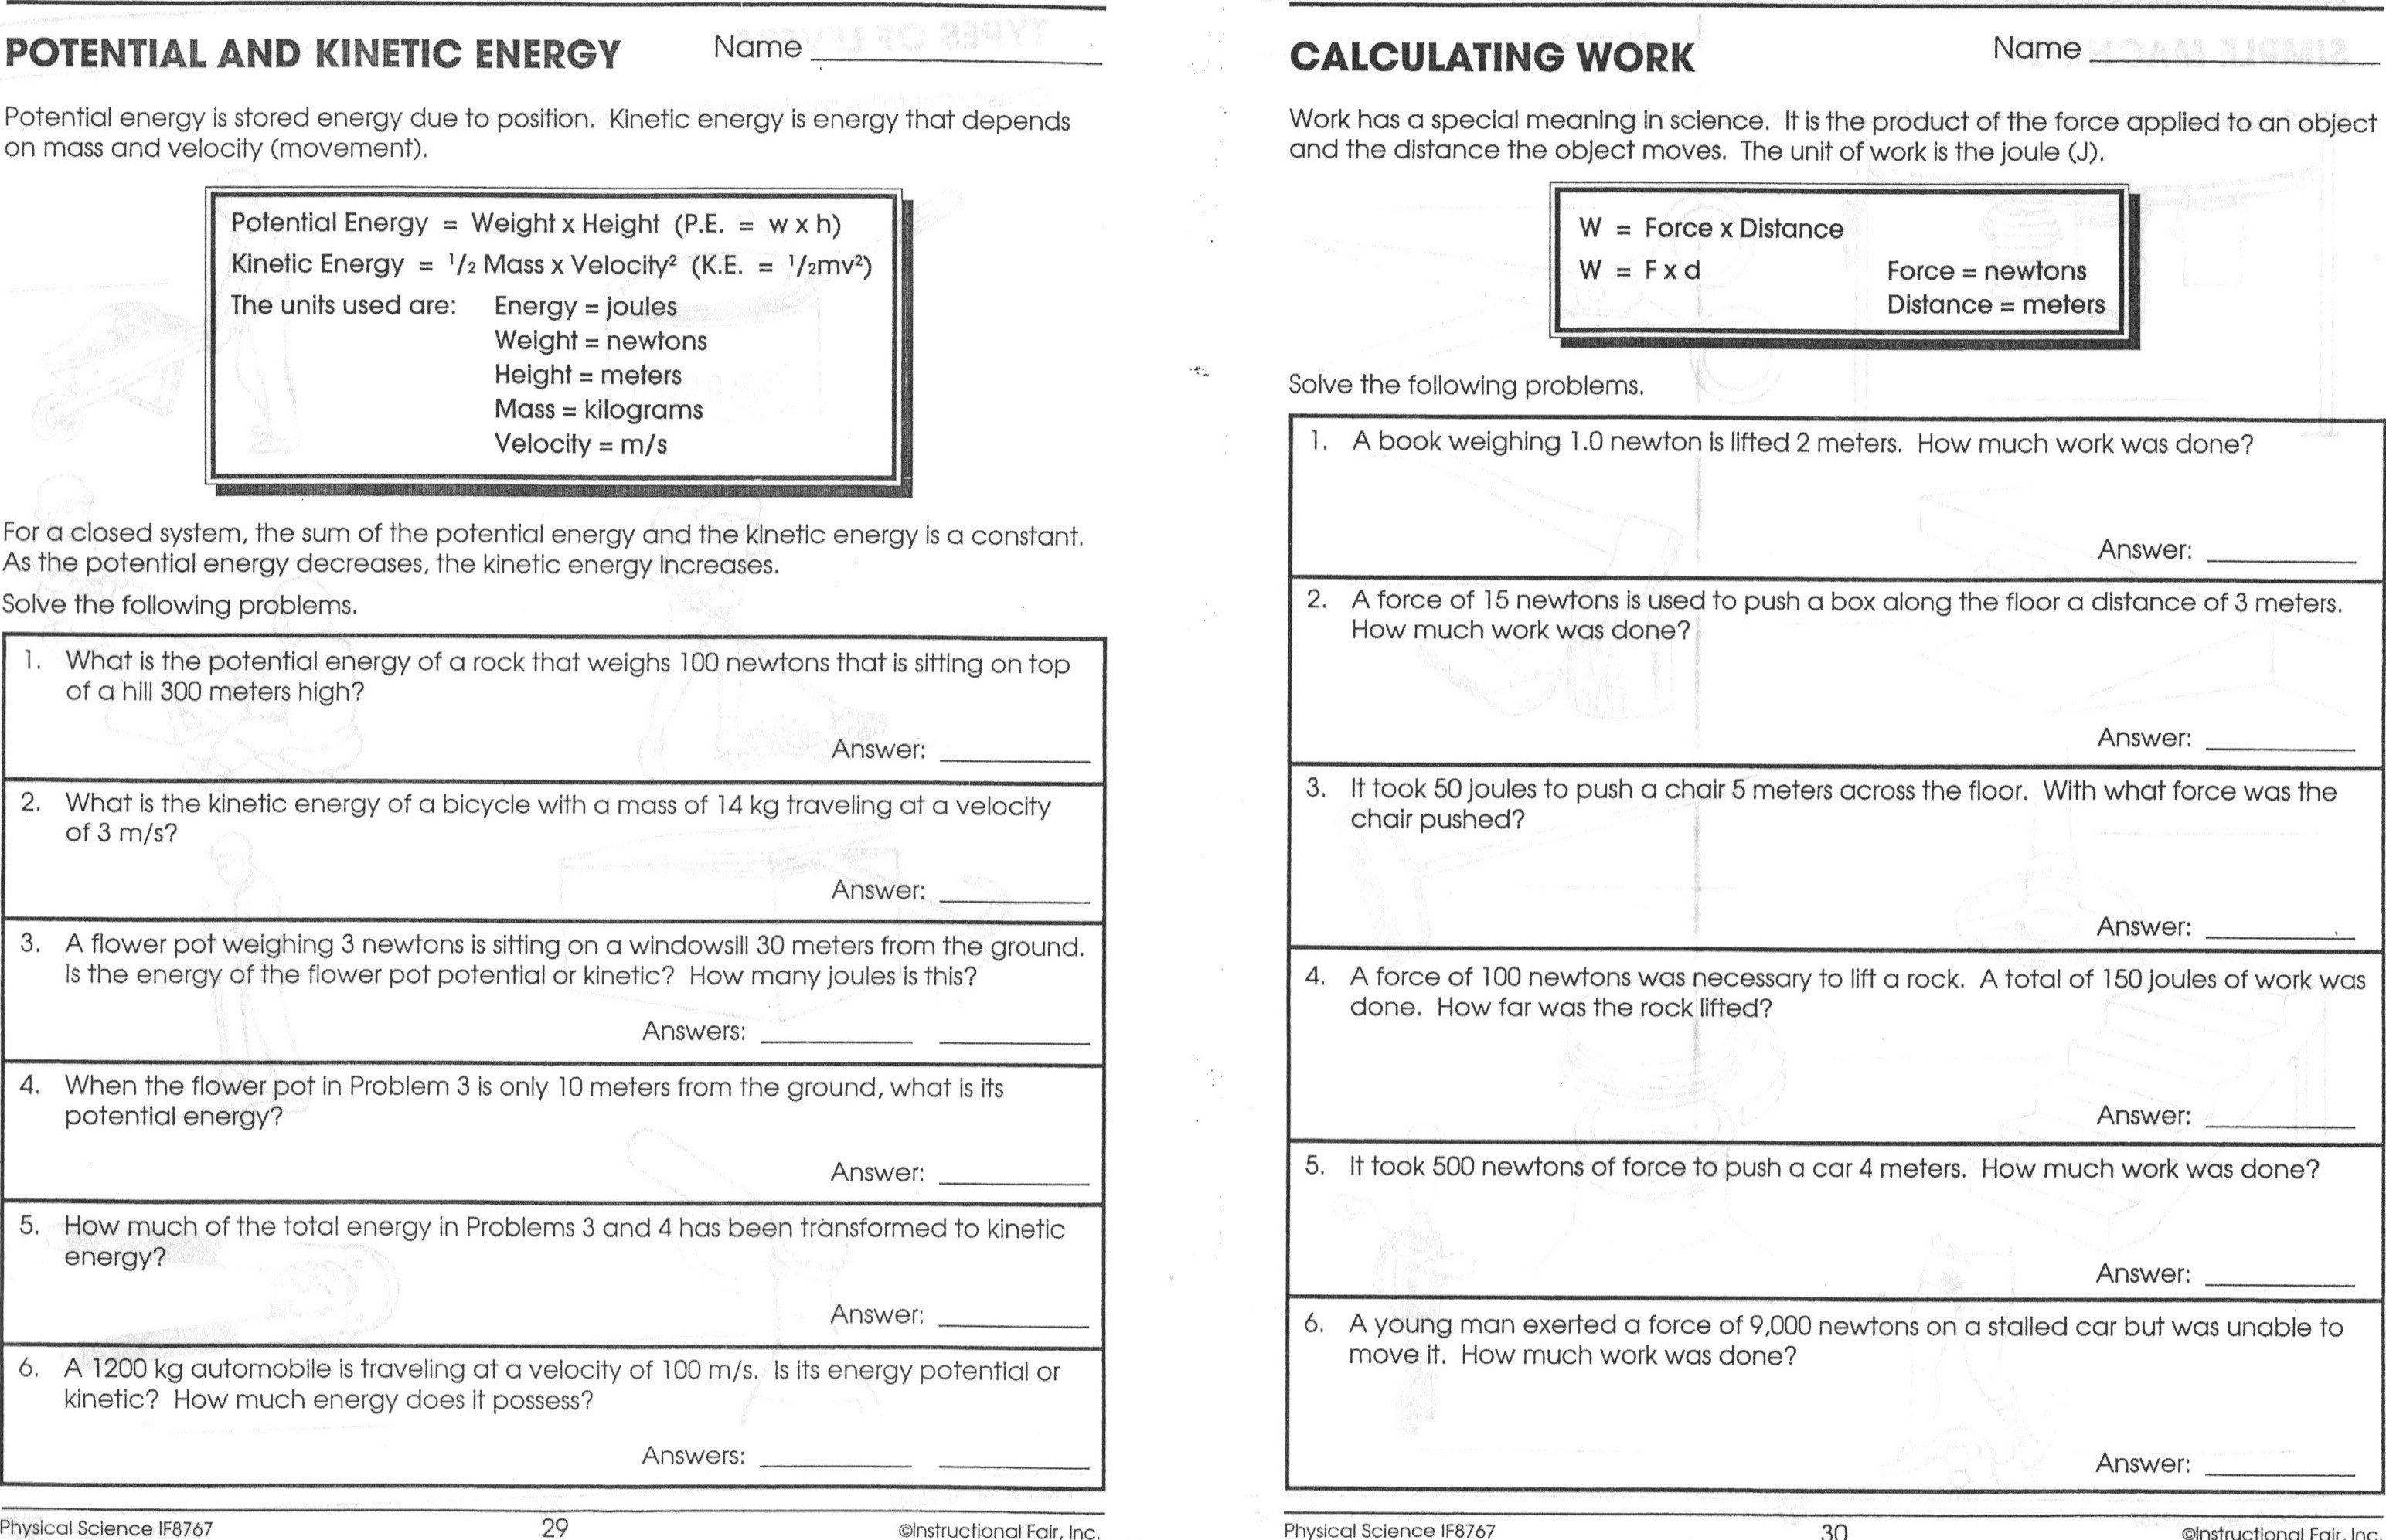 Best Of Potential Vs Kinetic Energy Worksheet Answers New Collection - Free Printable Worksheets On Potential And Kinetic Energy